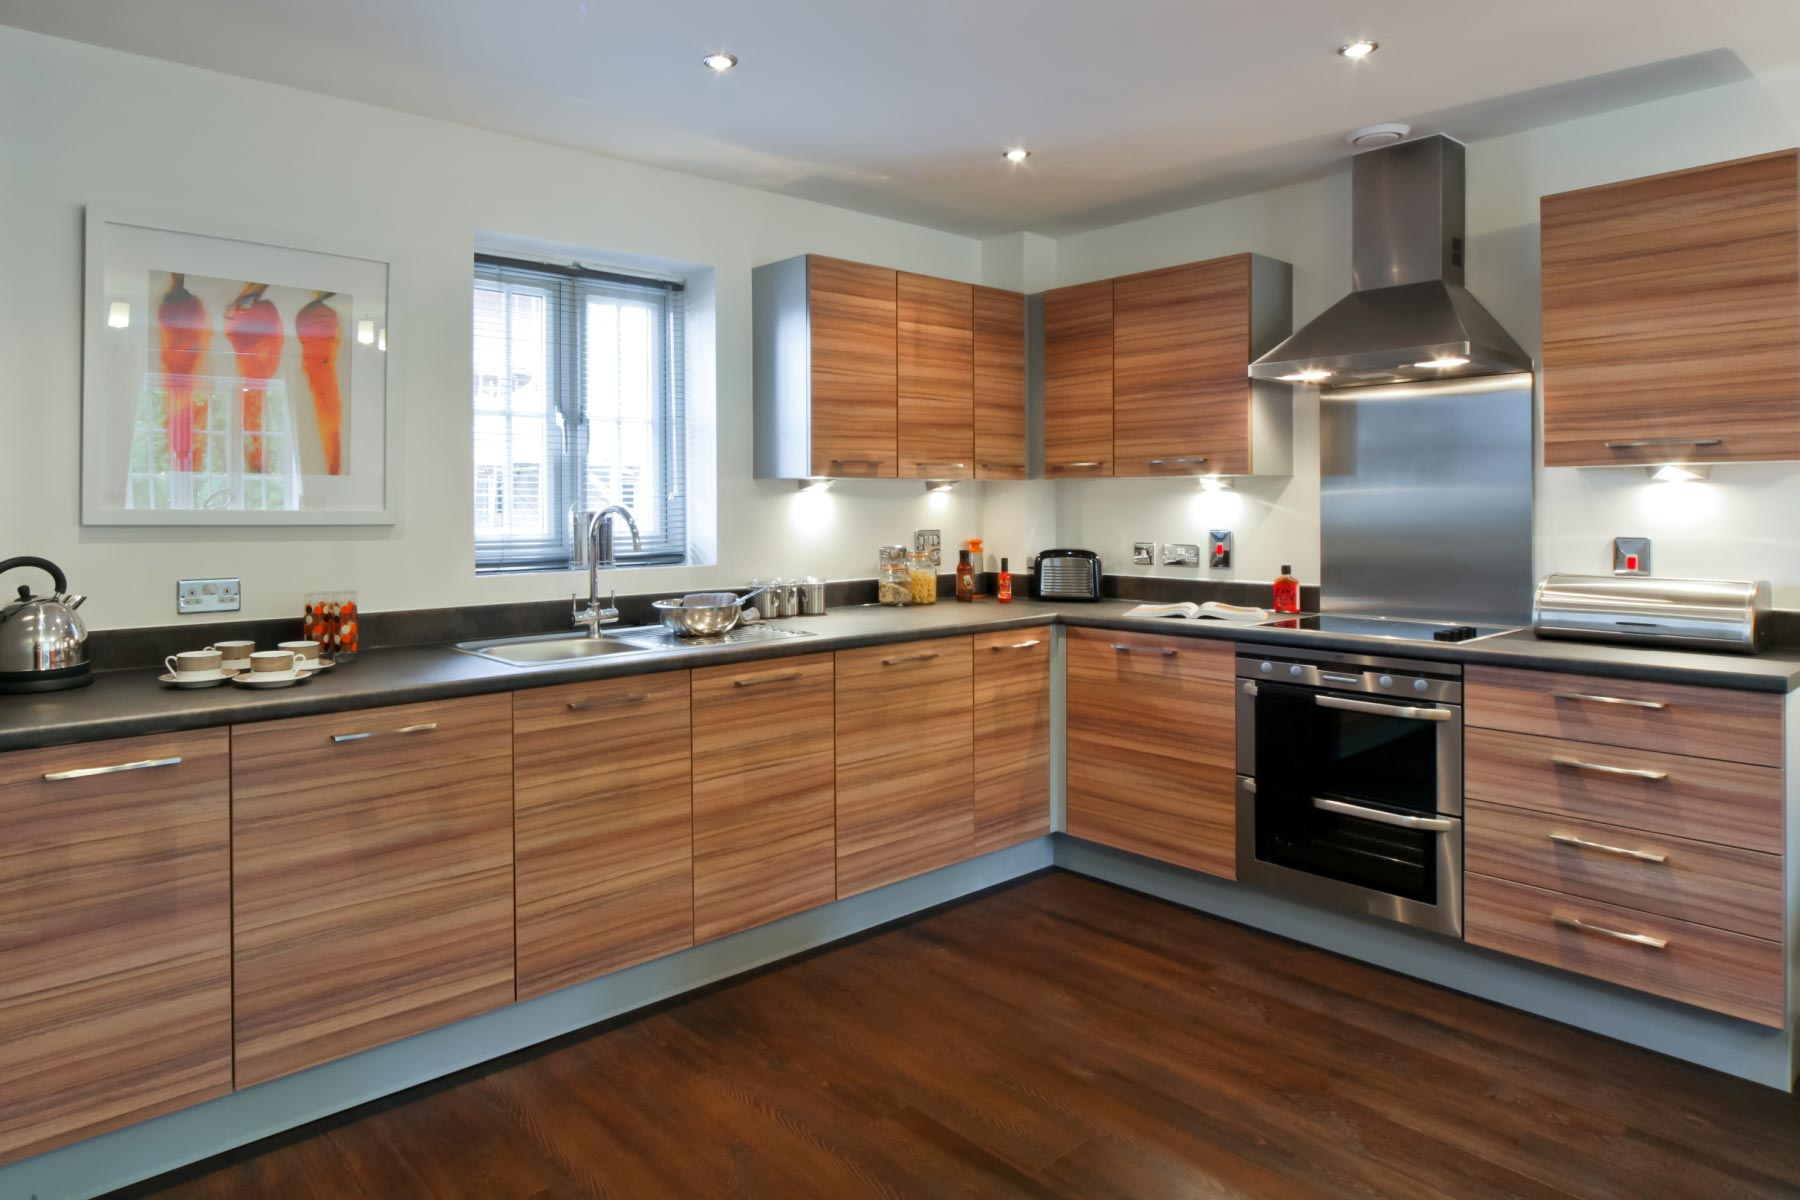 Taylor Wimpey -Typical kitchen